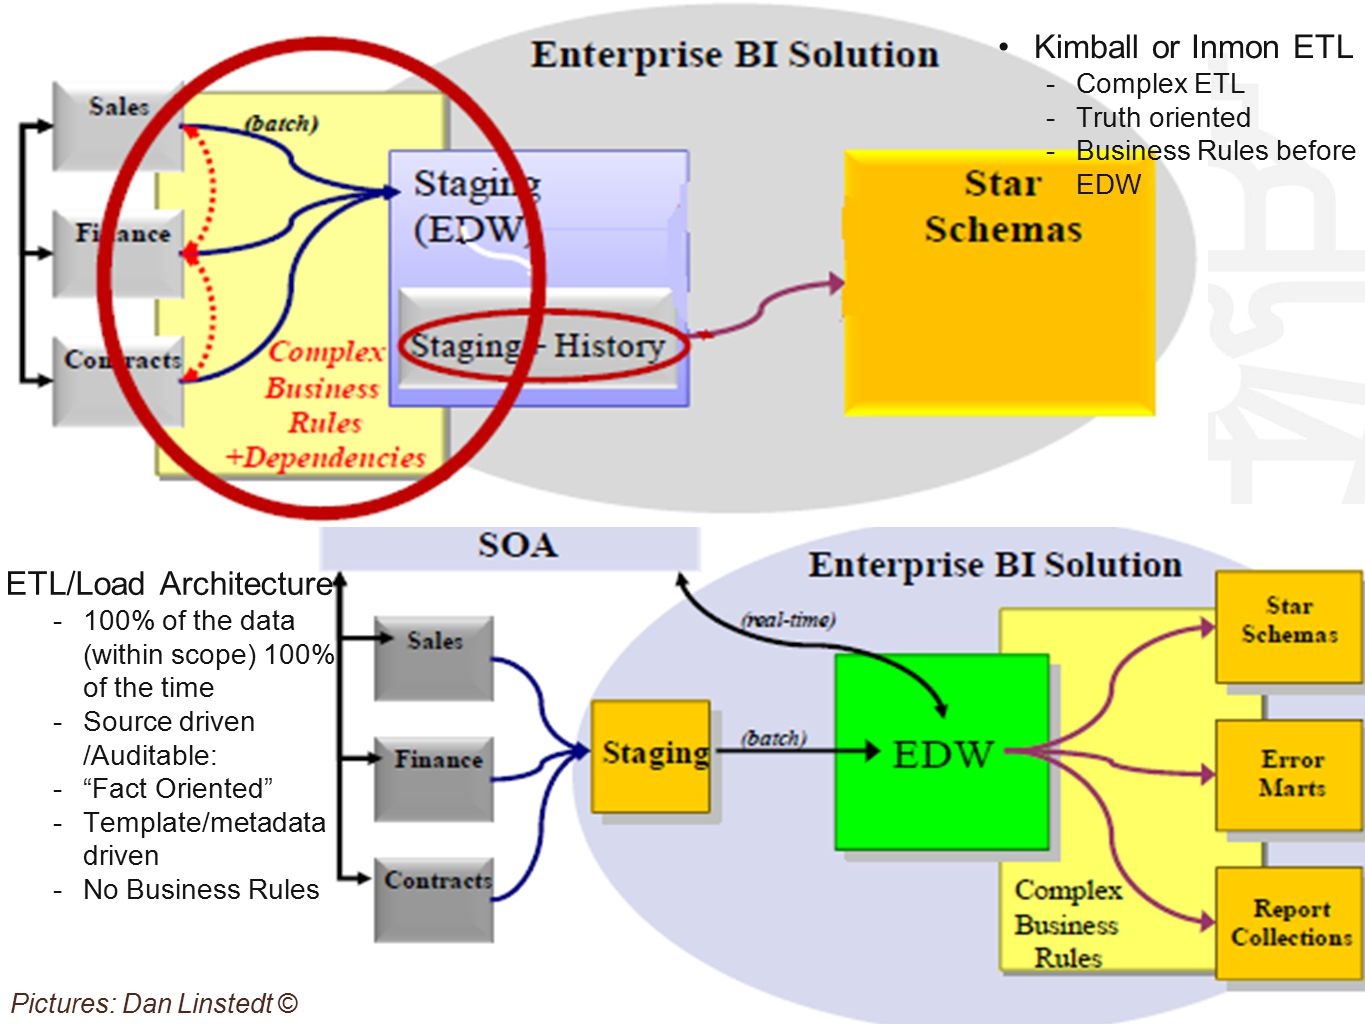 ETL/Load Architecture -100% of the data (within scope) 100% of the time -Source driven /Auditable: - Fact Oriented -Template/metadata driven -No Business Rules Kimball or Inmon ETL -Complex ETL -Truth oriented -Business Rules before EDW Pictures: Dan Linstedt ©